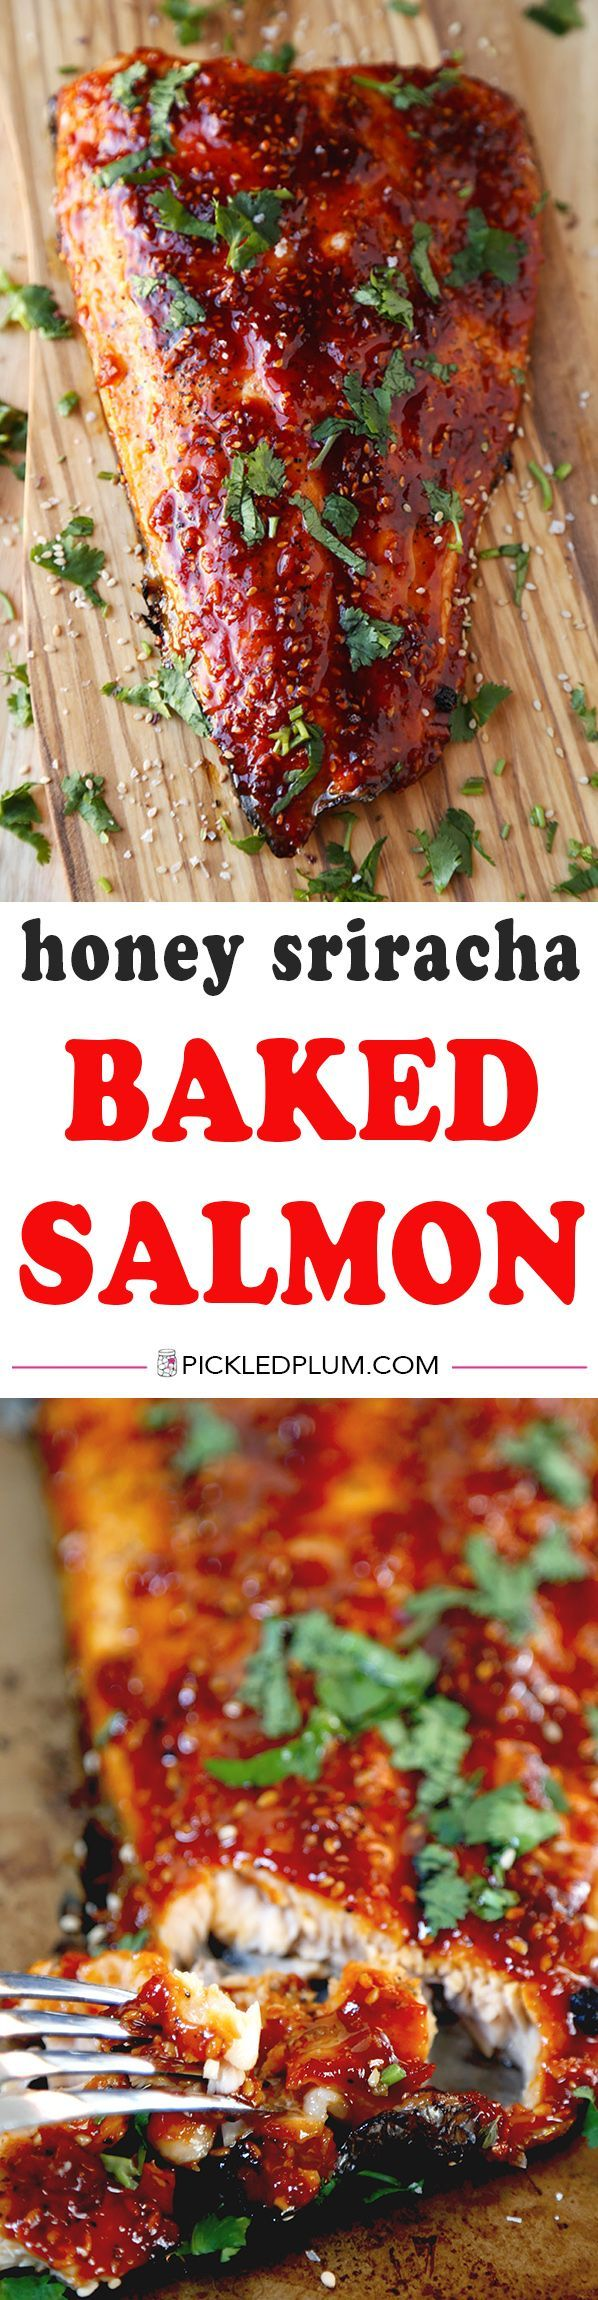 Honey Sriracha Oven Baked Salmon  This Is A Sweet, Spicy And Smoky Baked  Salmon